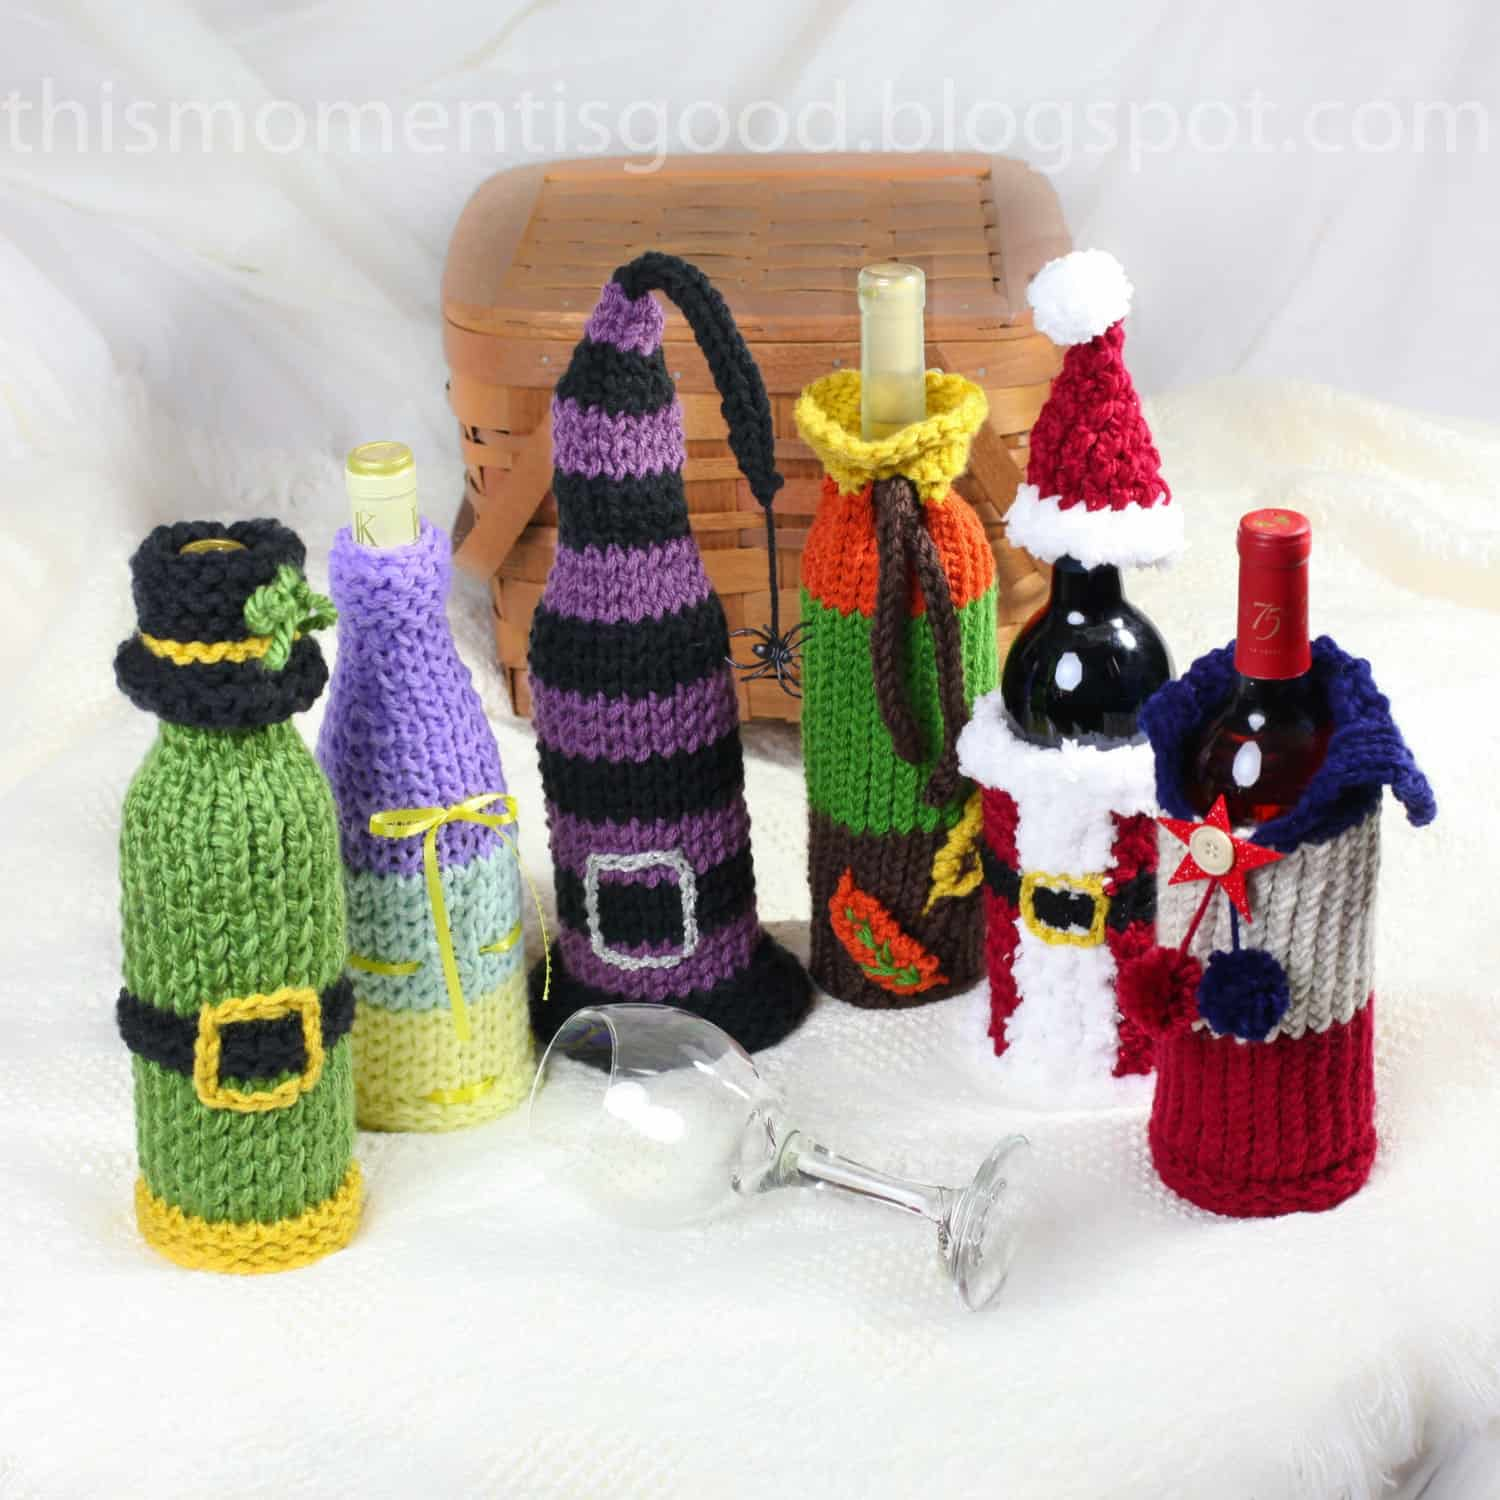 Knitted wine bottle covers